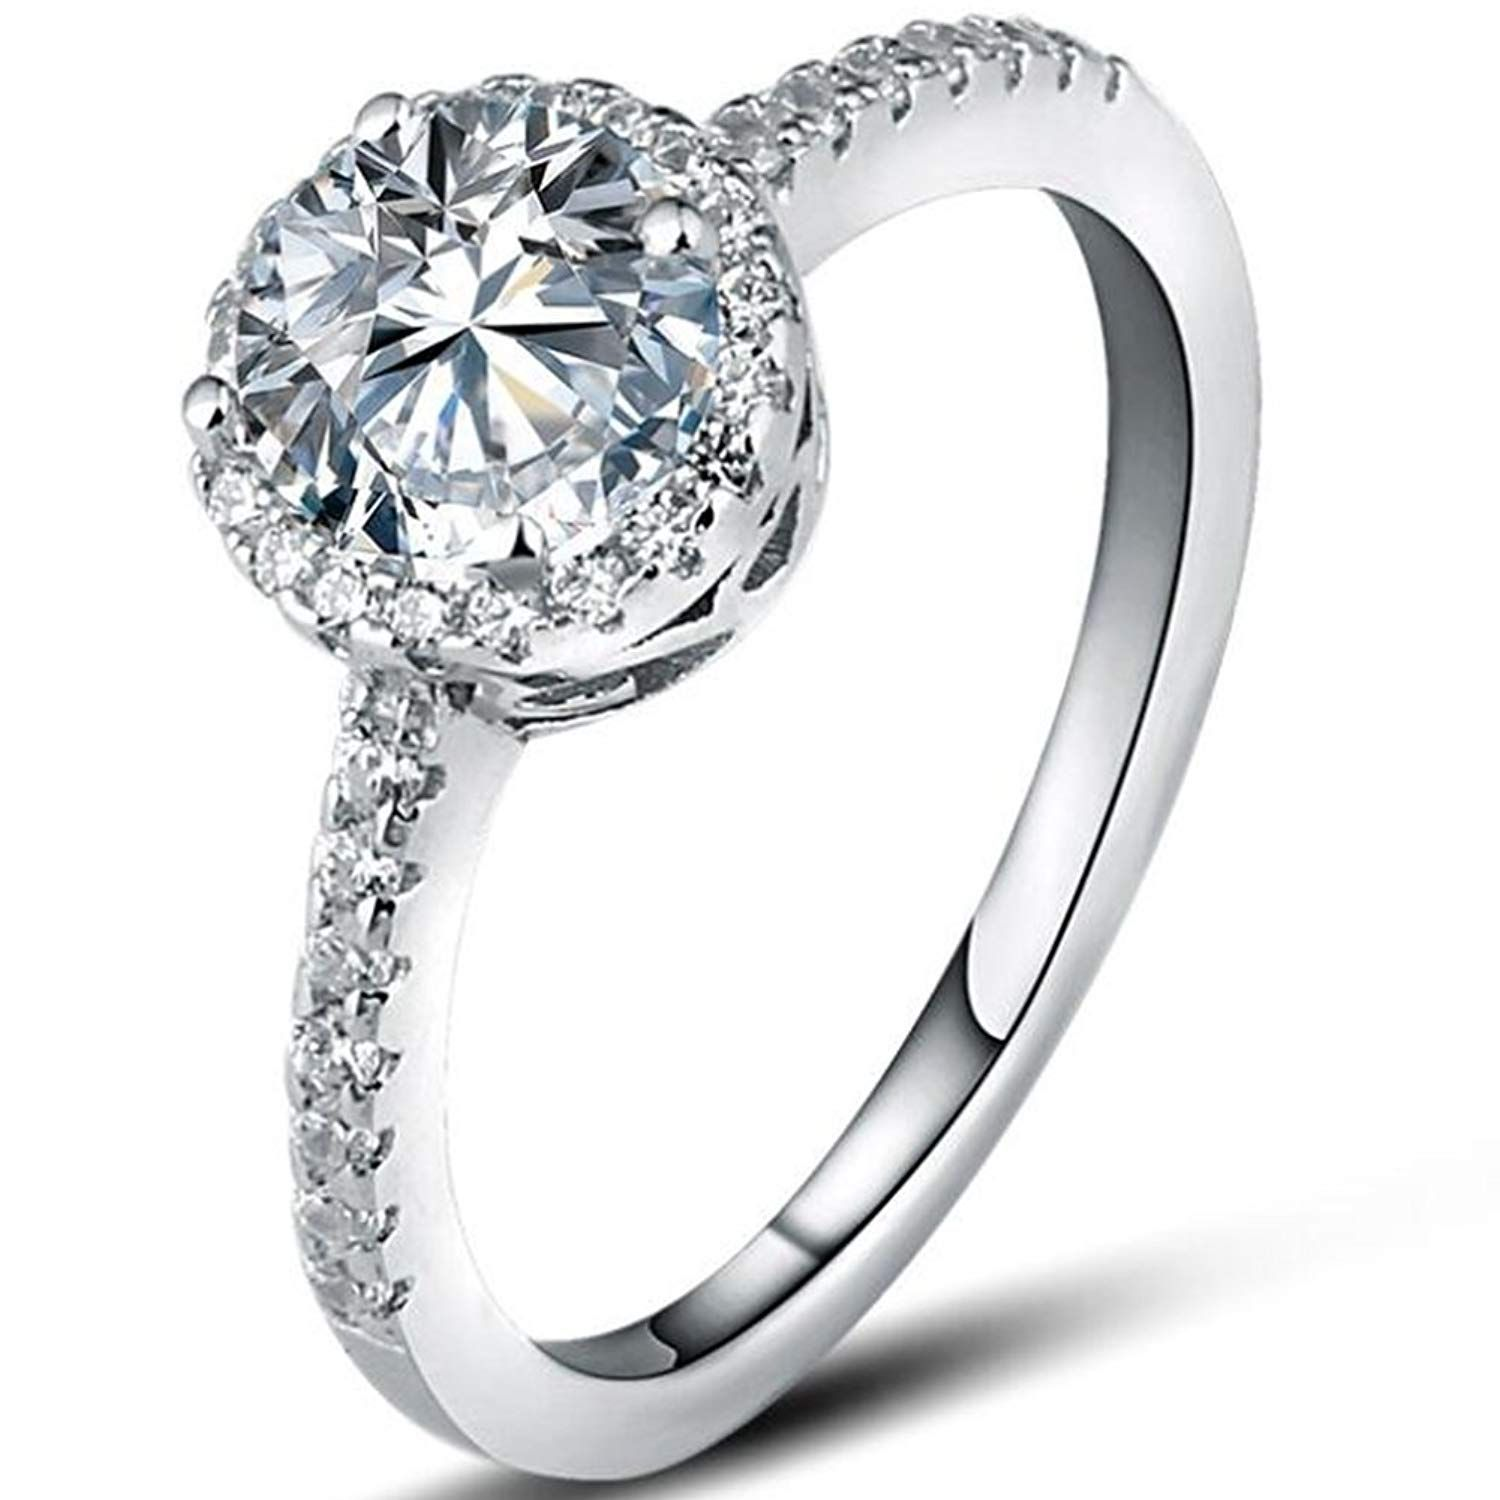 iSilver 925 Sterling Silver Solitaire CZ Diamond Wedding